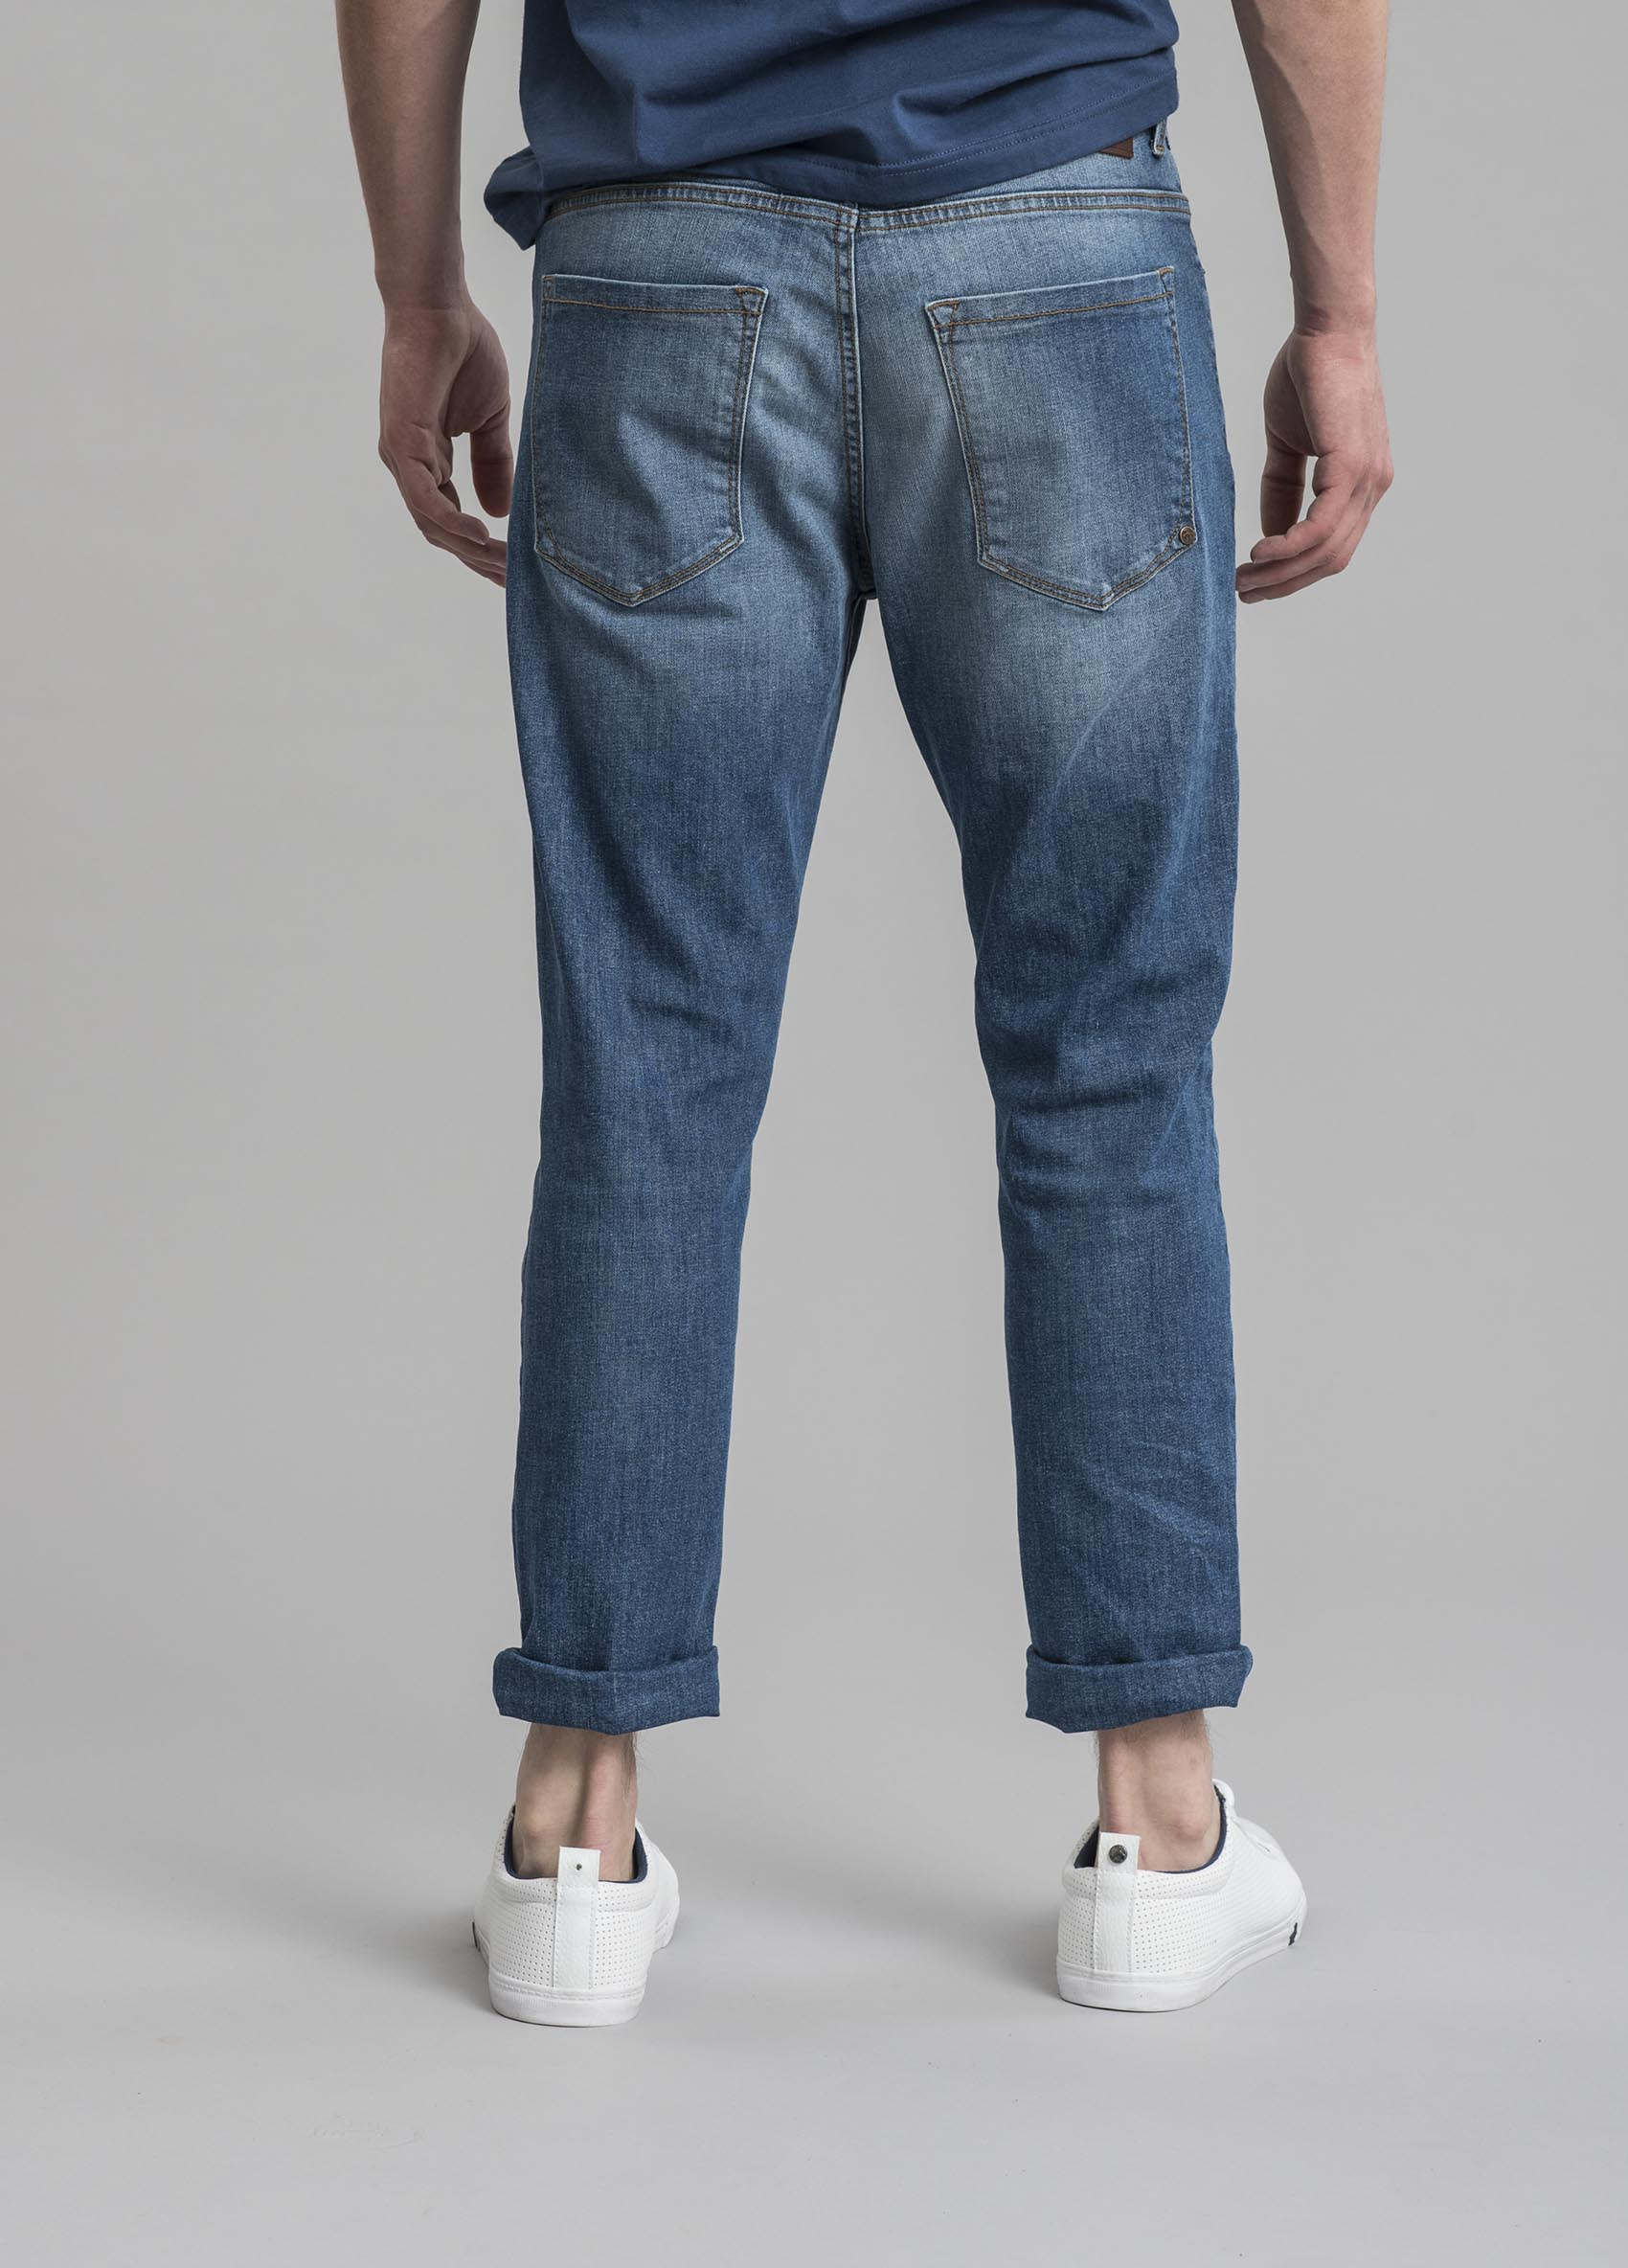 penguin_5-pkt-denim-skinny_04-28-2020__picture-12309